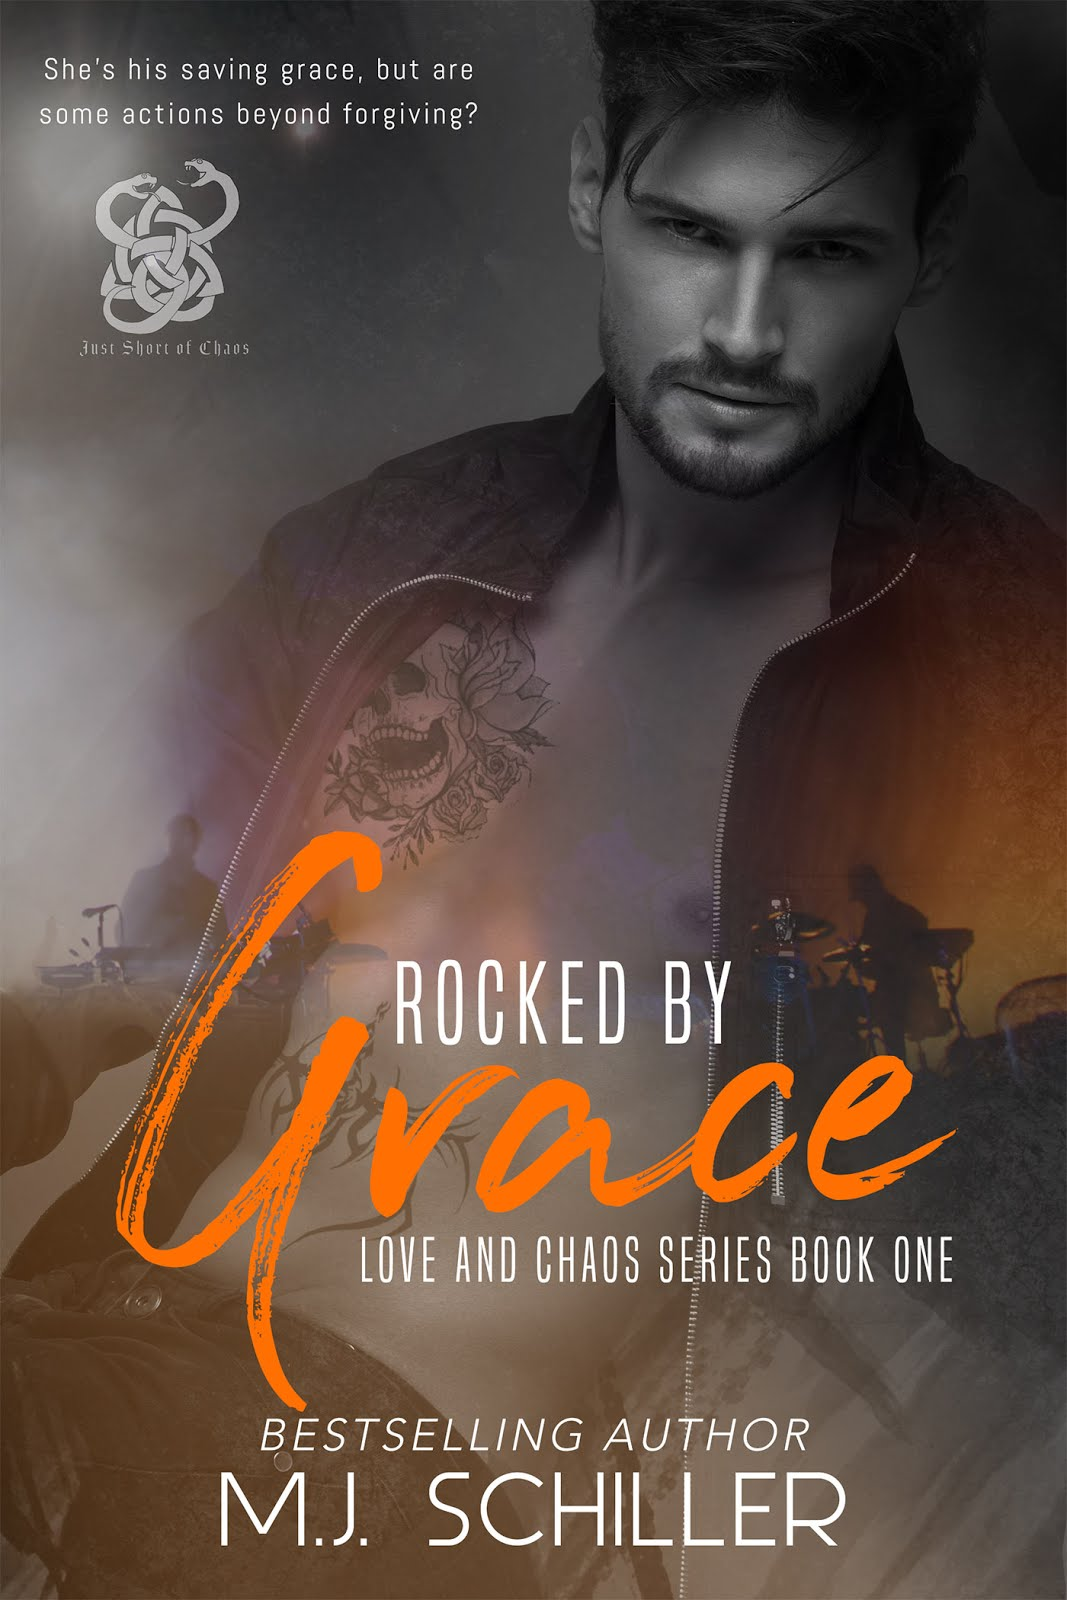 ROCKED BY GRACE